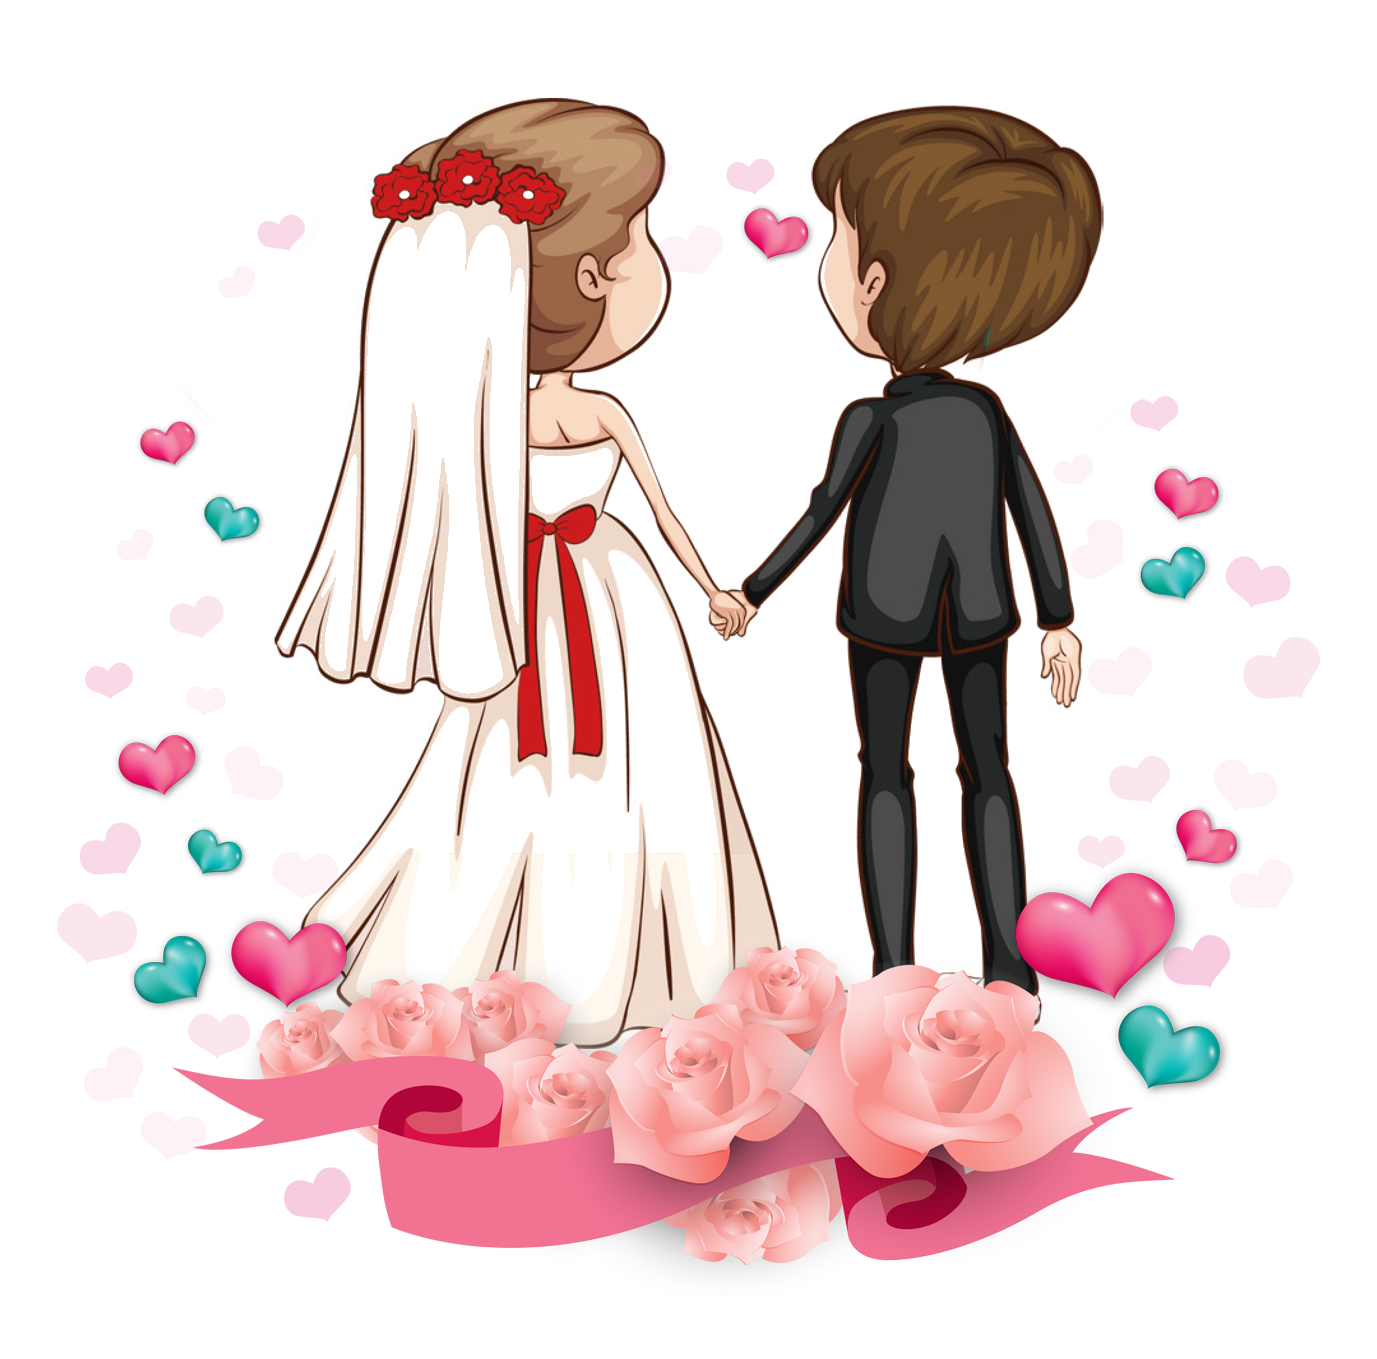 Love couple png. Romance cartoon marriage transprent